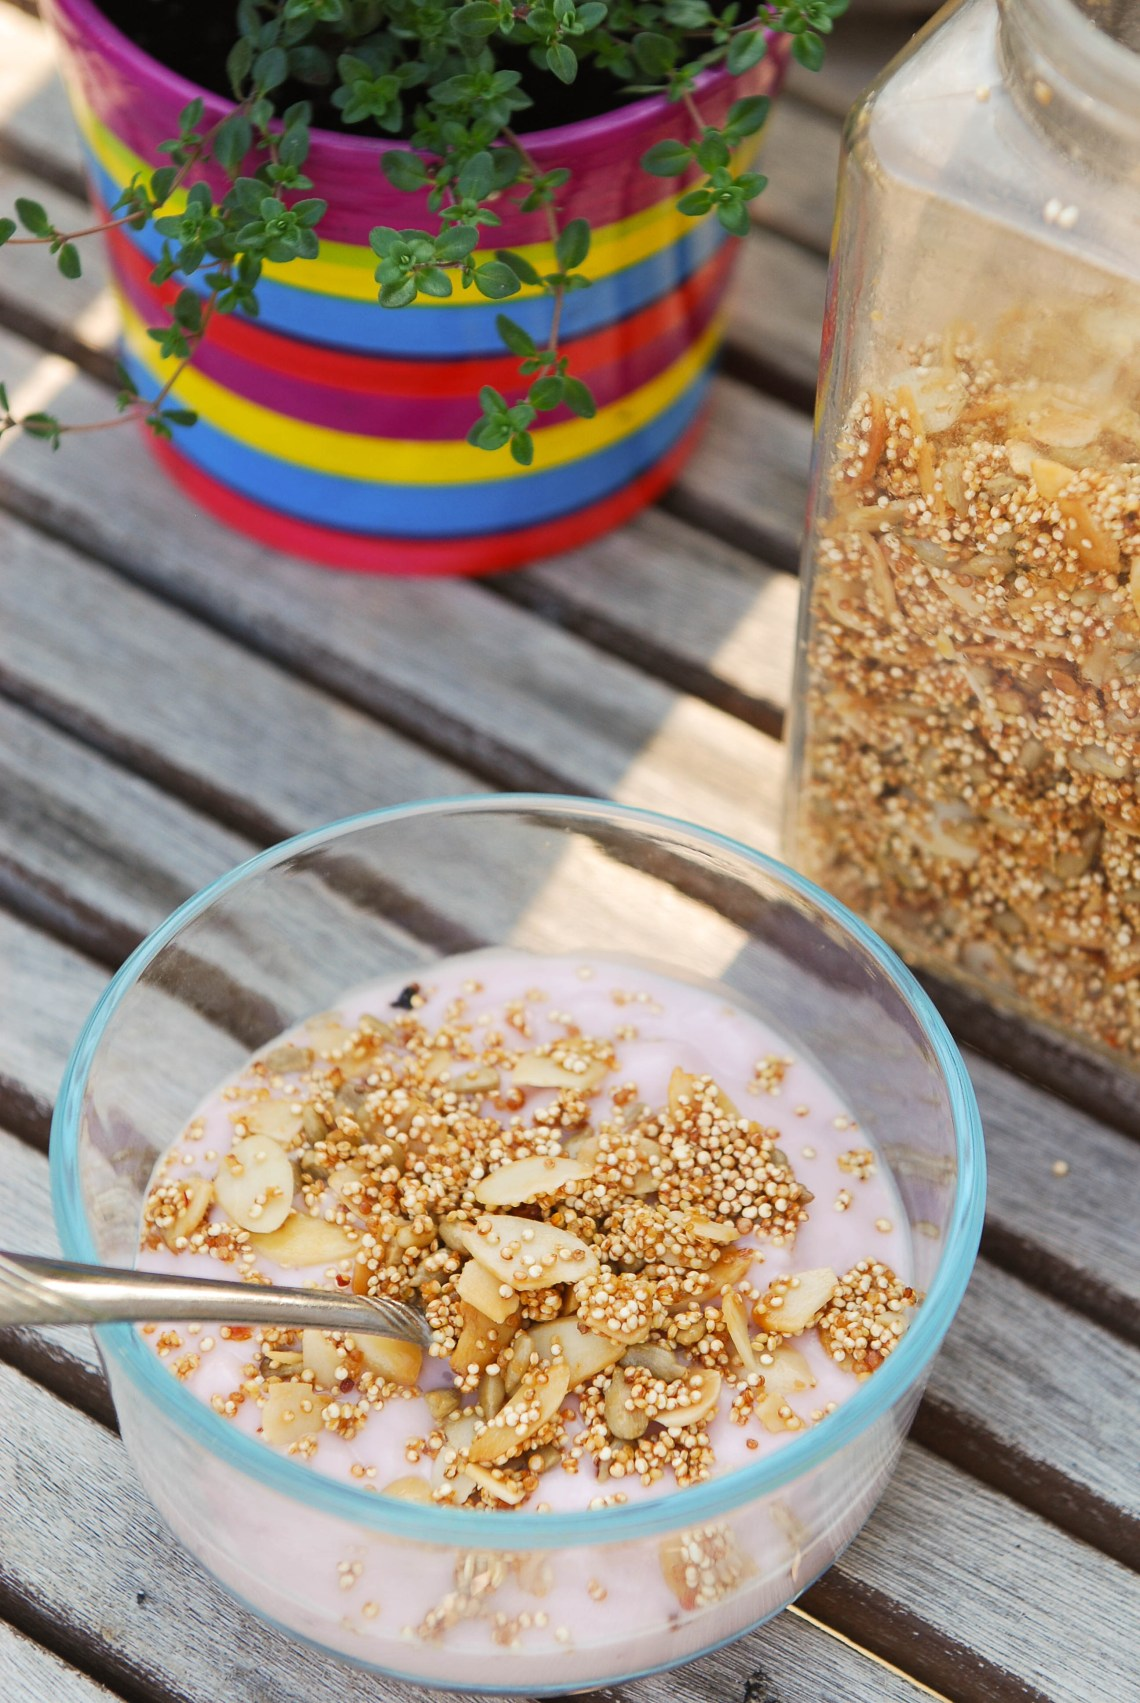 Quinoa crunch cereal from Nourish on Nutmeg Disrupted